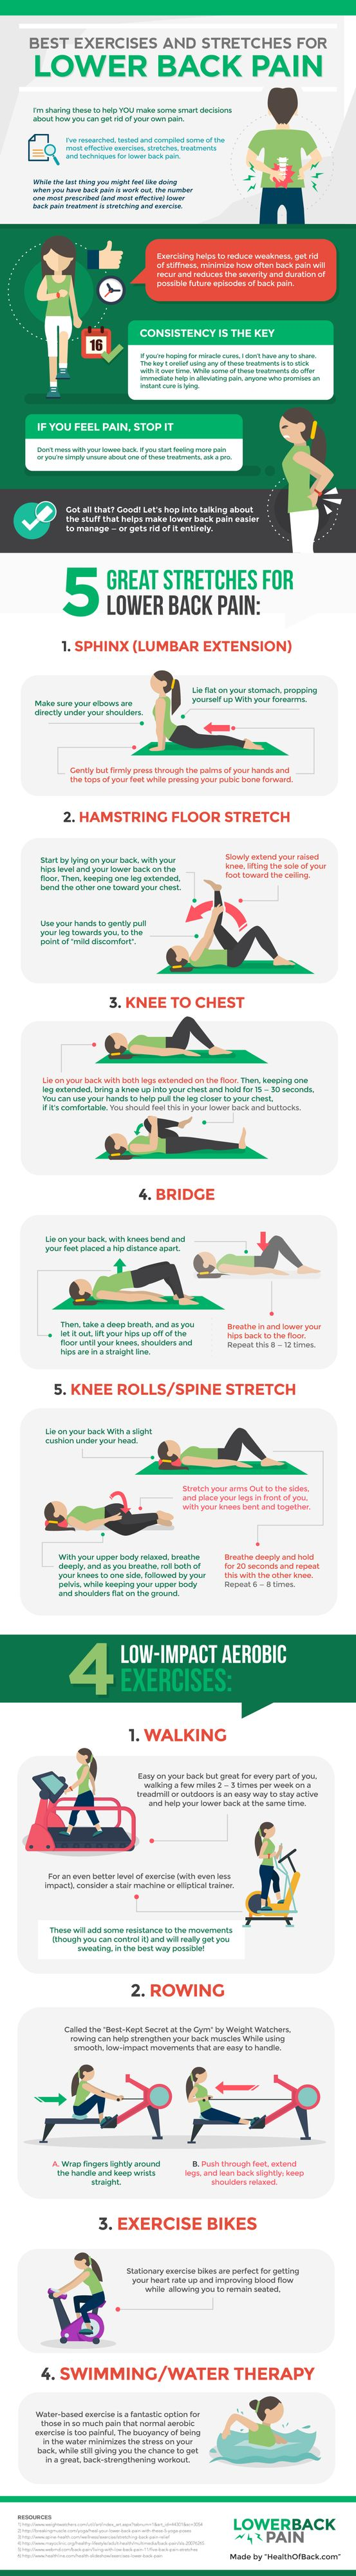 9 Exercises for Lower Back Pain (INFOGRAPHIC):